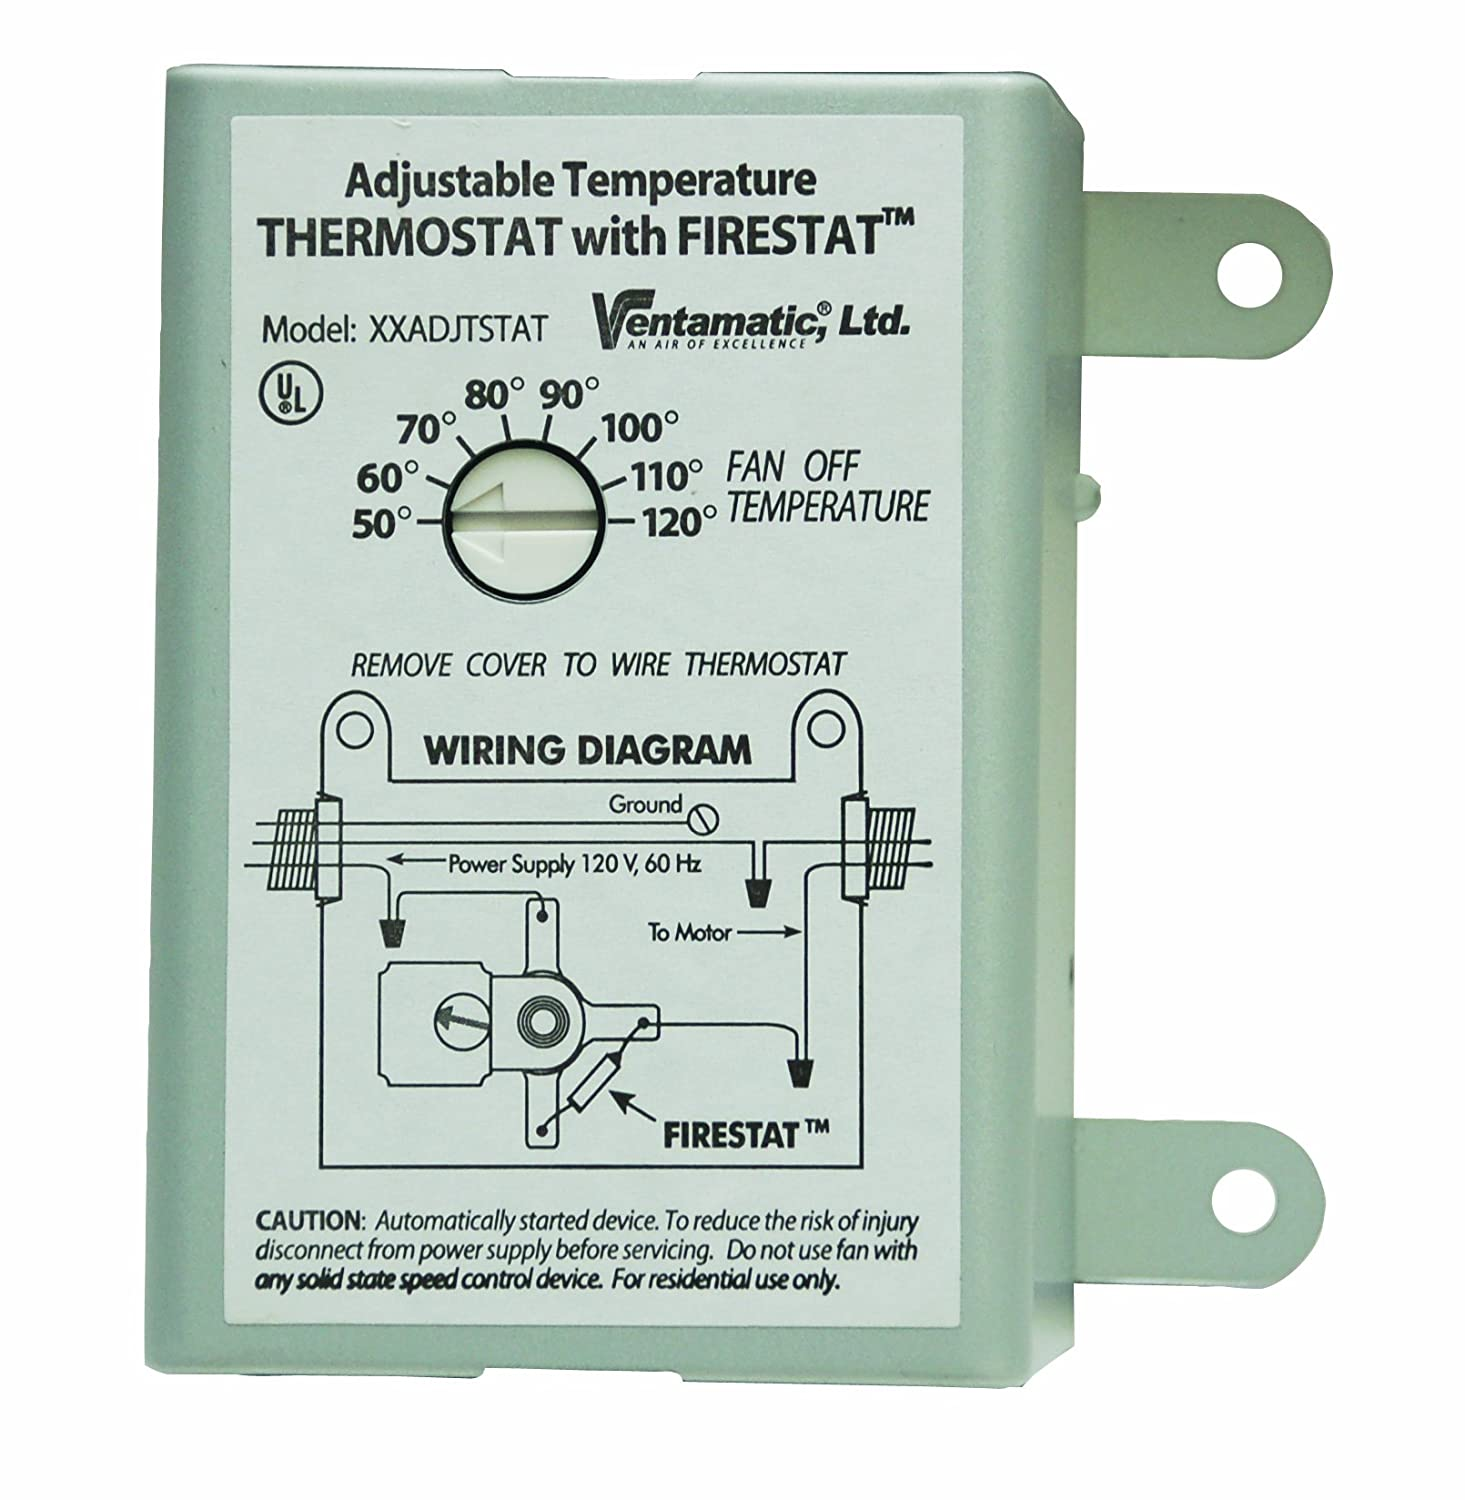 ventamatic xxfirestat 10 amp adjustable programmable thermostat with firestat for power attic ventilators, replacement thermostat (�w� ���k) Furnace Thermostat Wiring Diagram